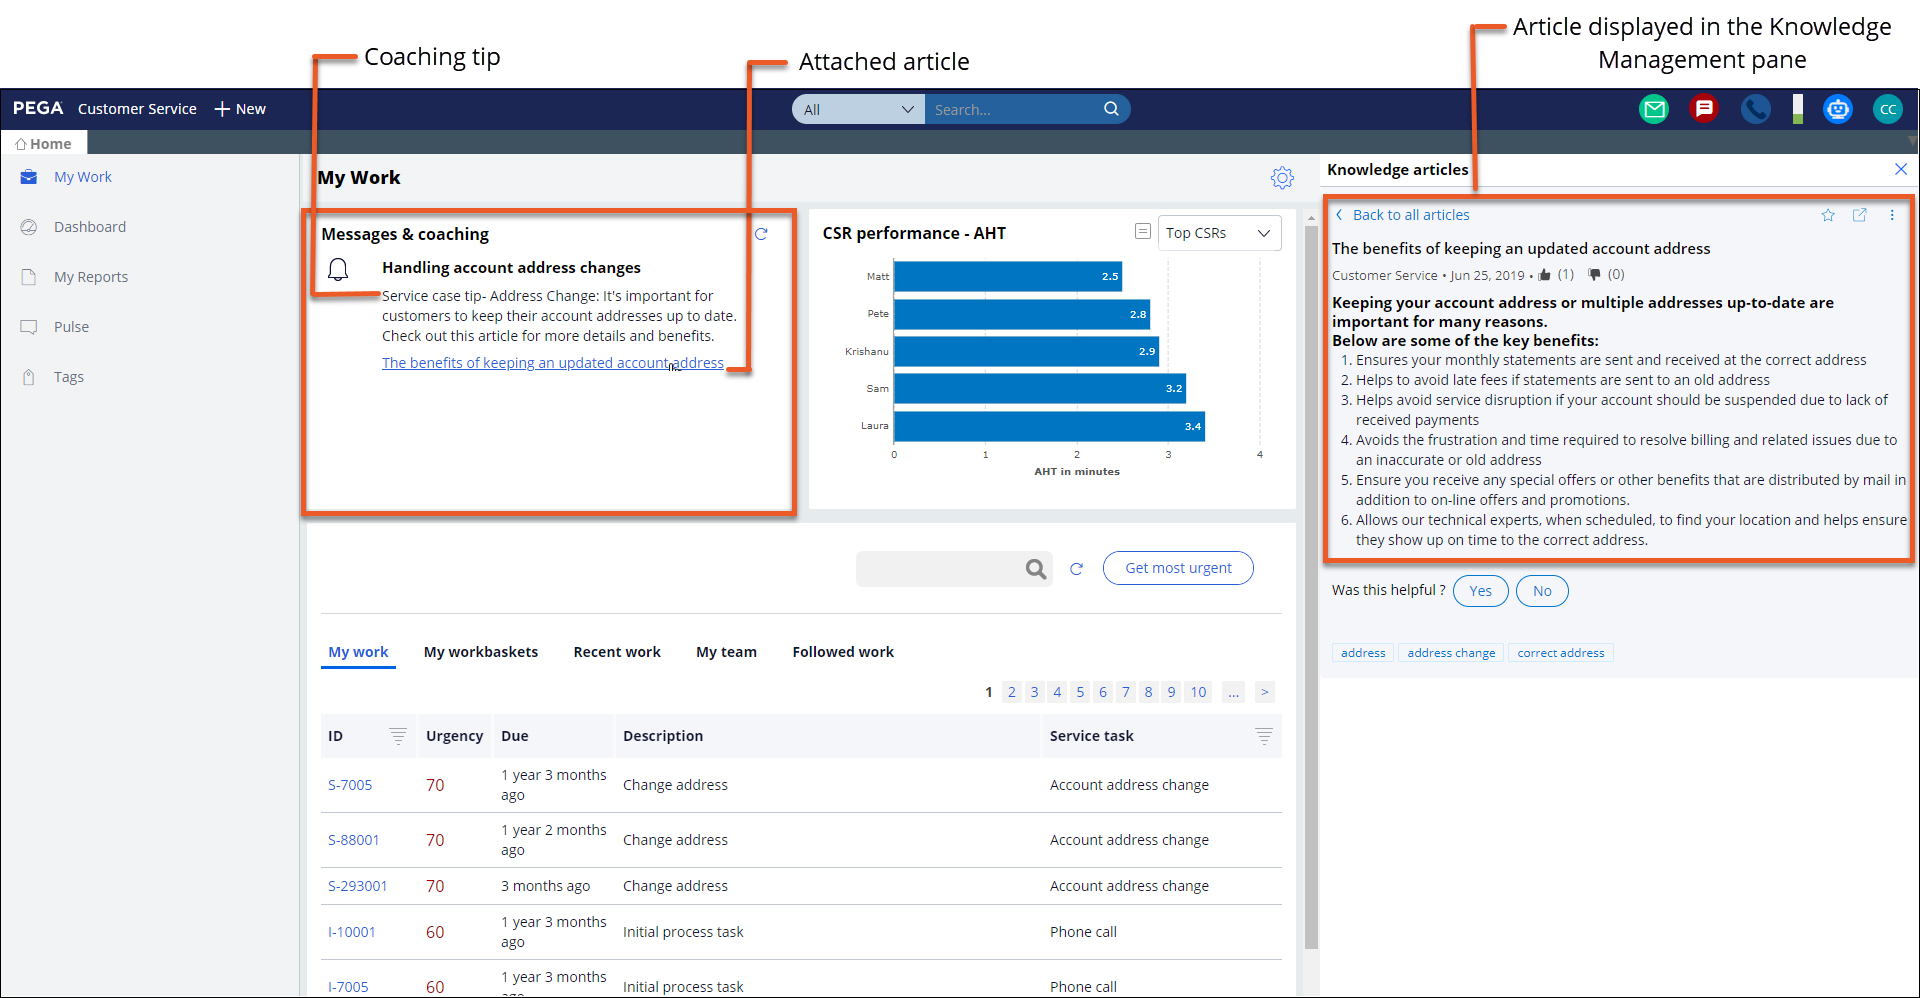 Content of article associated with coaching tip is displayed in the                     Knowledge Management pane